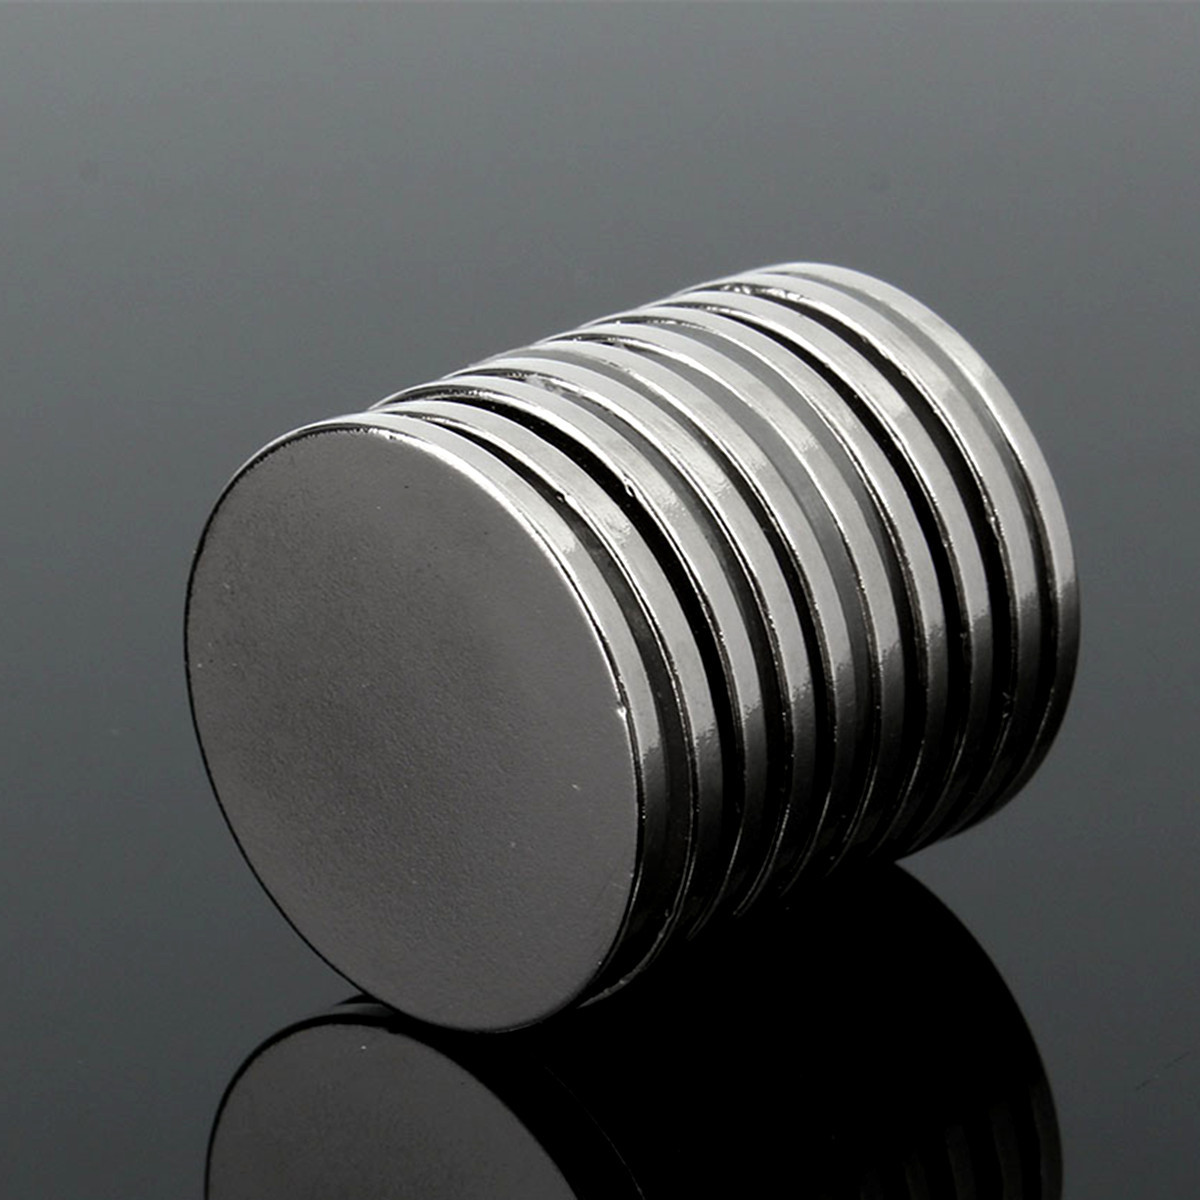 10PCS 25mm x 2mm N35 Strong Round Magnets Rare Earth Neodymium Magnet Circular magnet Permanent 25 x 2mm magnet 20pcs powerful neodymium disc magnets n35 grade diy craft reborn permanent magnet round magnet strong magnet 9mm x 3mm